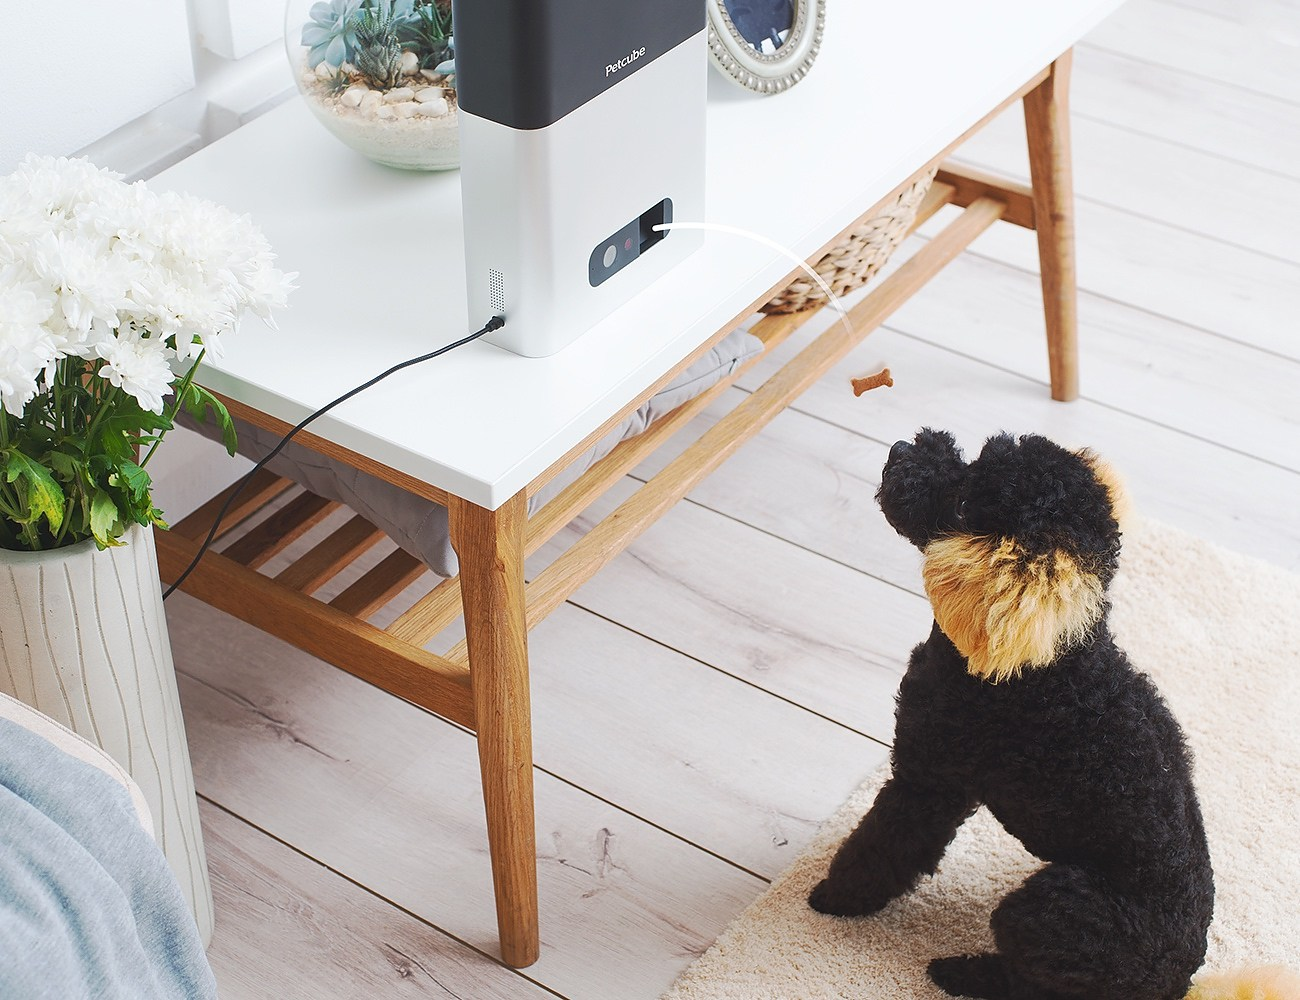 Petcube Bites + Petcube Play – Treat & Care for Pets Remotely